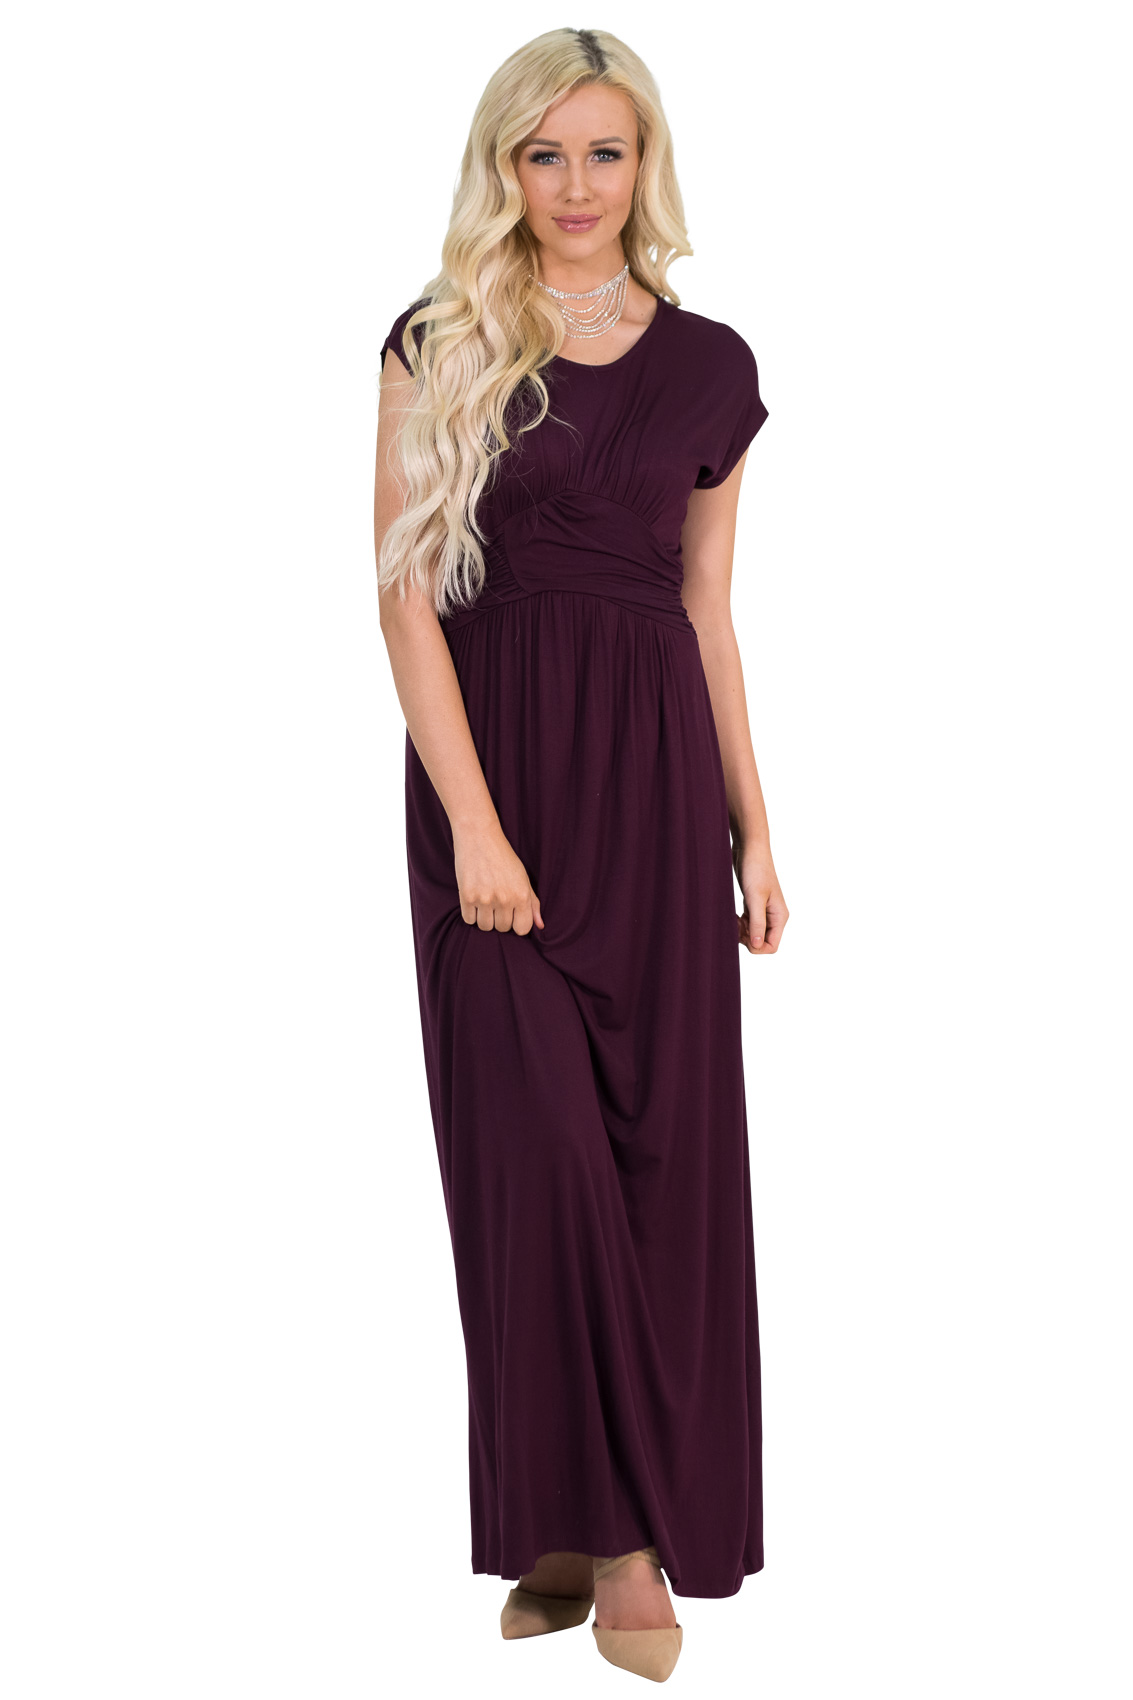 Athena modest maxi dress wruched empire waist in deep plum purple athena modest maxi bridesmaid dress in deep plum purple burgundy plum ombrellifo Image collections